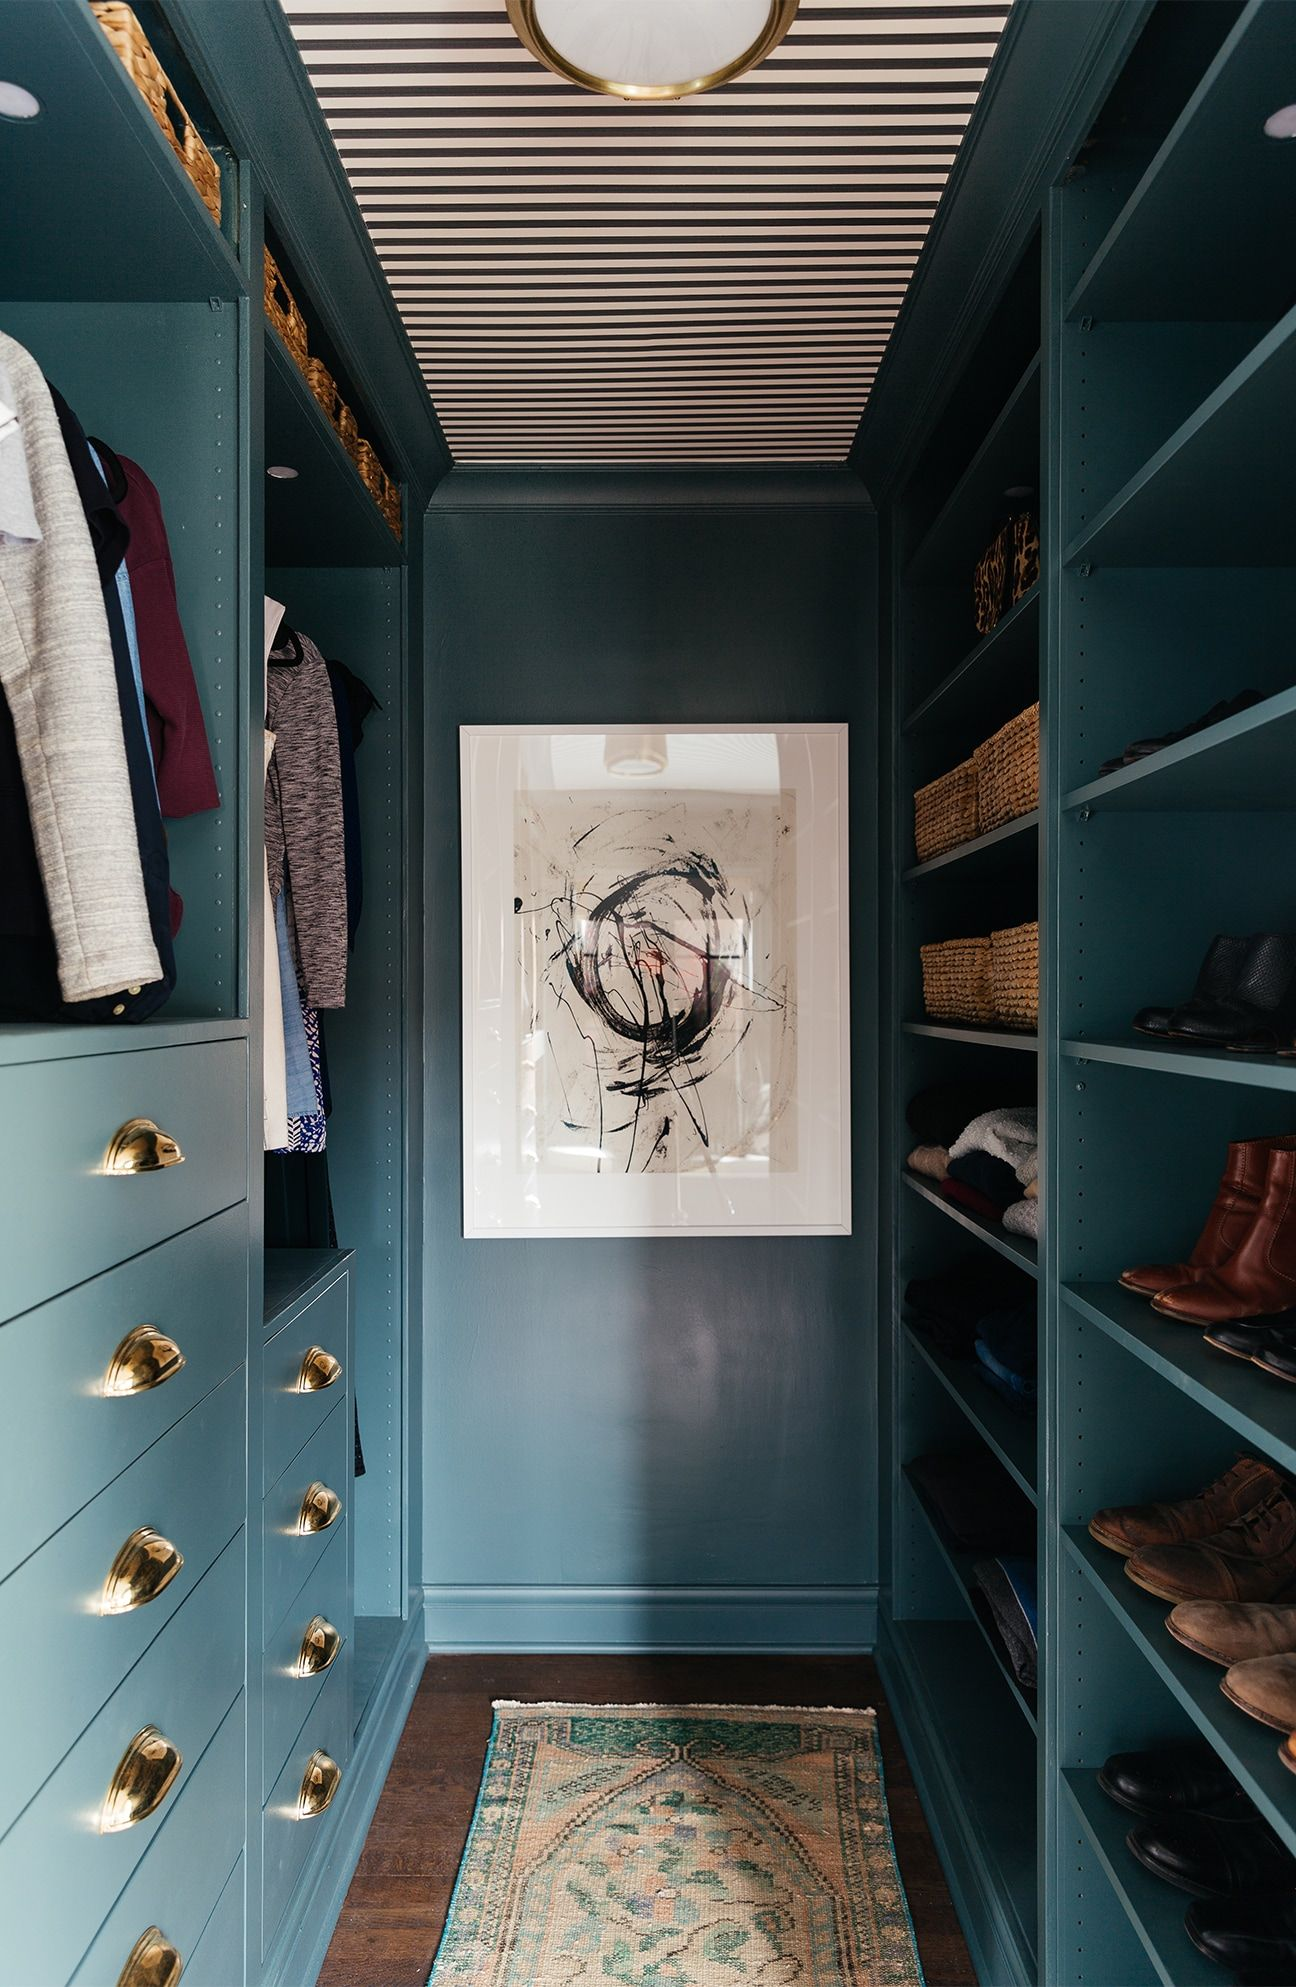 5 IKEA Pax Hacks That Give Our Nonfunctional Closets Hope